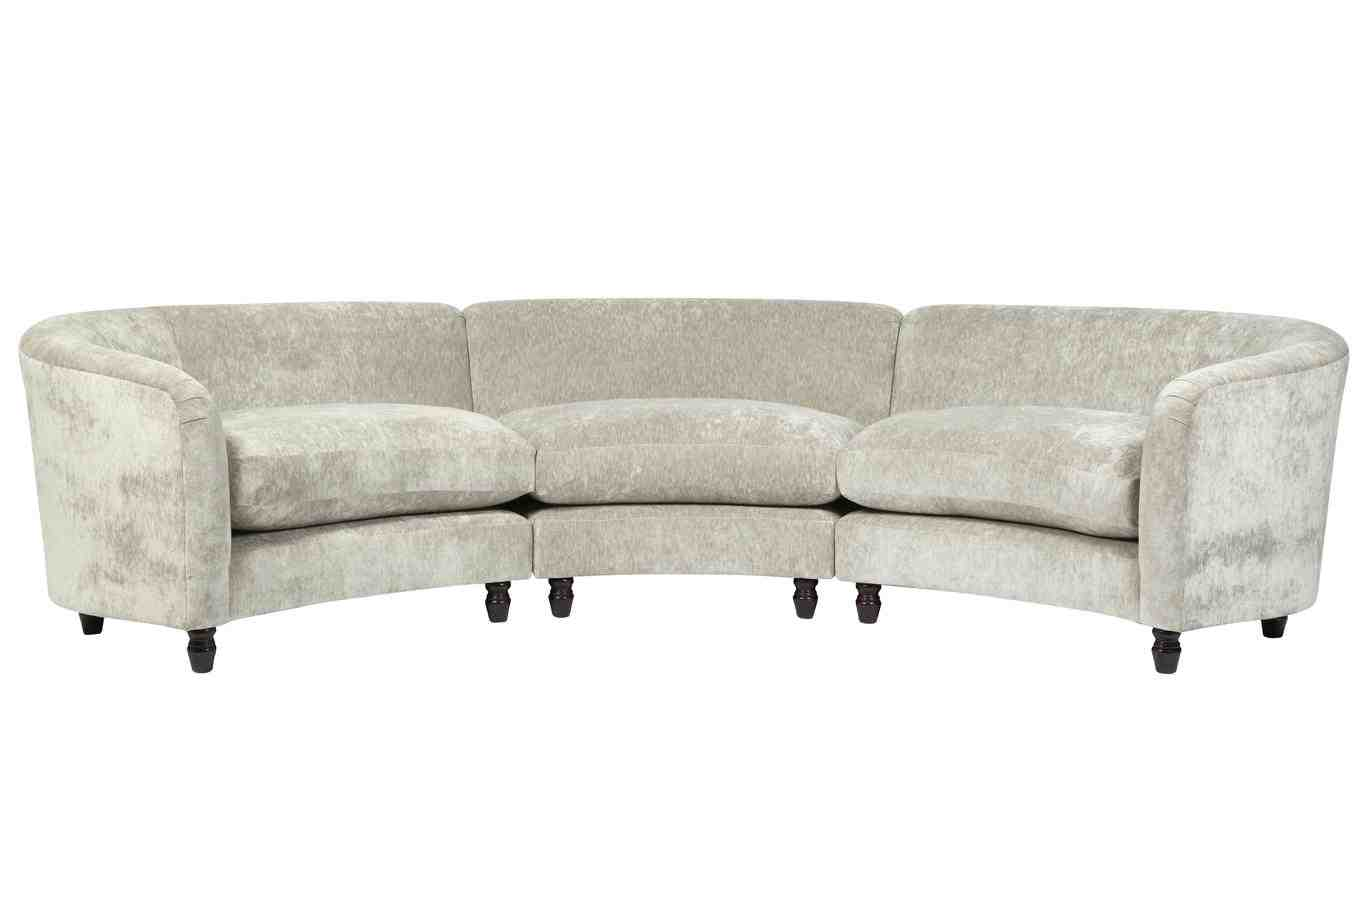 Curve Sofas Italian Curved Sofa At 1stdibs Custom Curved Shape Sofa Avelle 232 Fabric